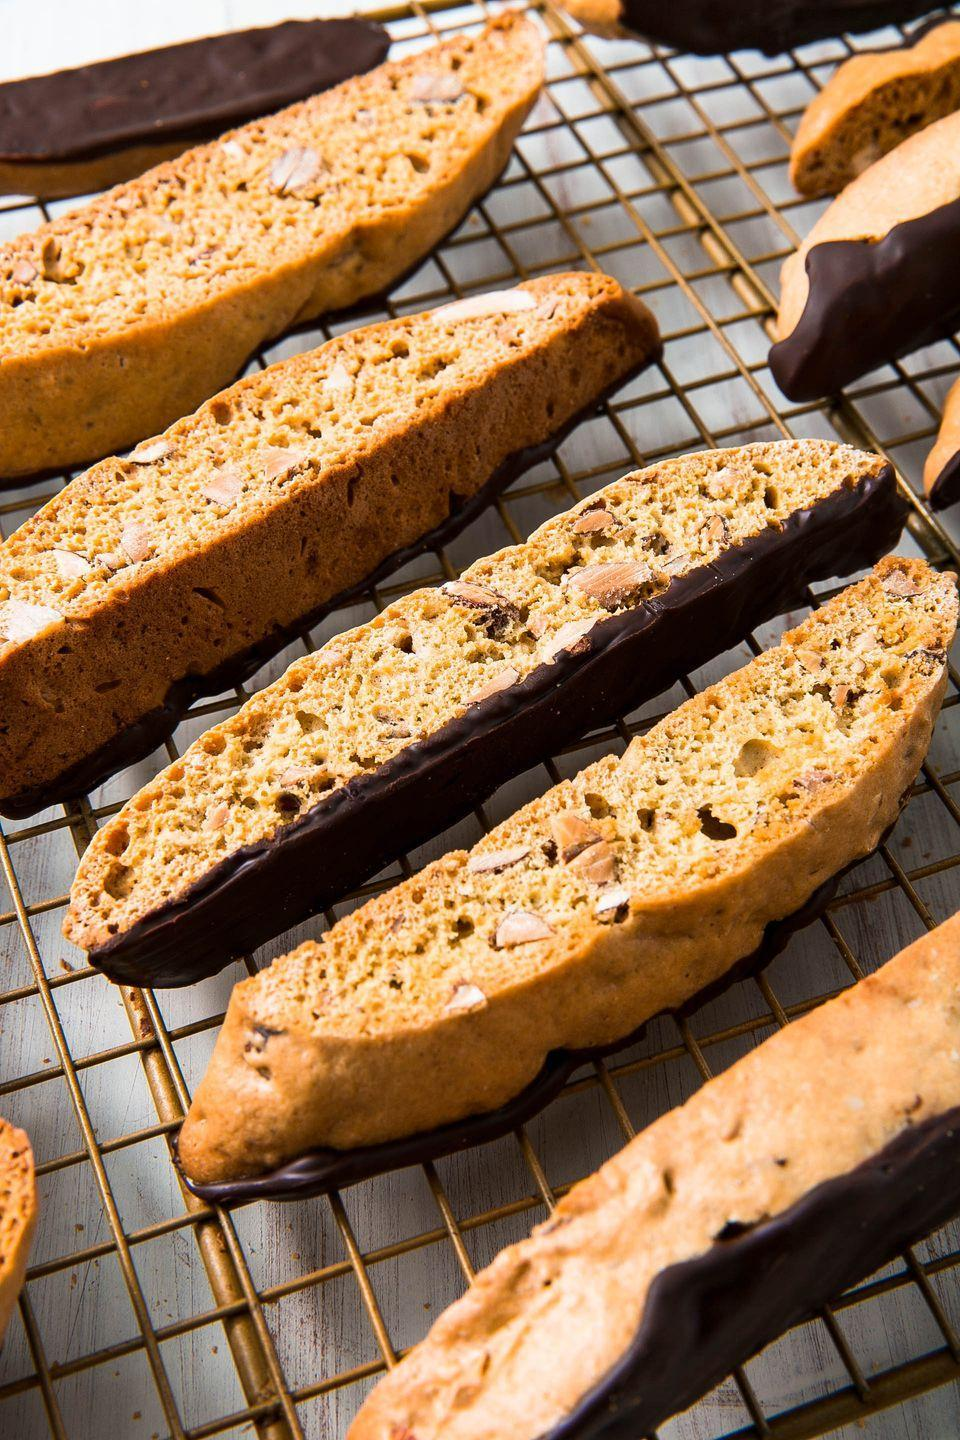 """<p>Perfect for dunking in coffee or (even better), hot chocolate. </p><p>Get the recipe from <a href=""""https://www.delish.com/cooking/recipe-ideas/a25486278/biscotti-recipe/"""" rel=""""nofollow noopener"""" target=""""_blank"""" data-ylk=""""slk:Delish"""" class=""""link rapid-noclick-resp"""">Delish</a>. </p>"""